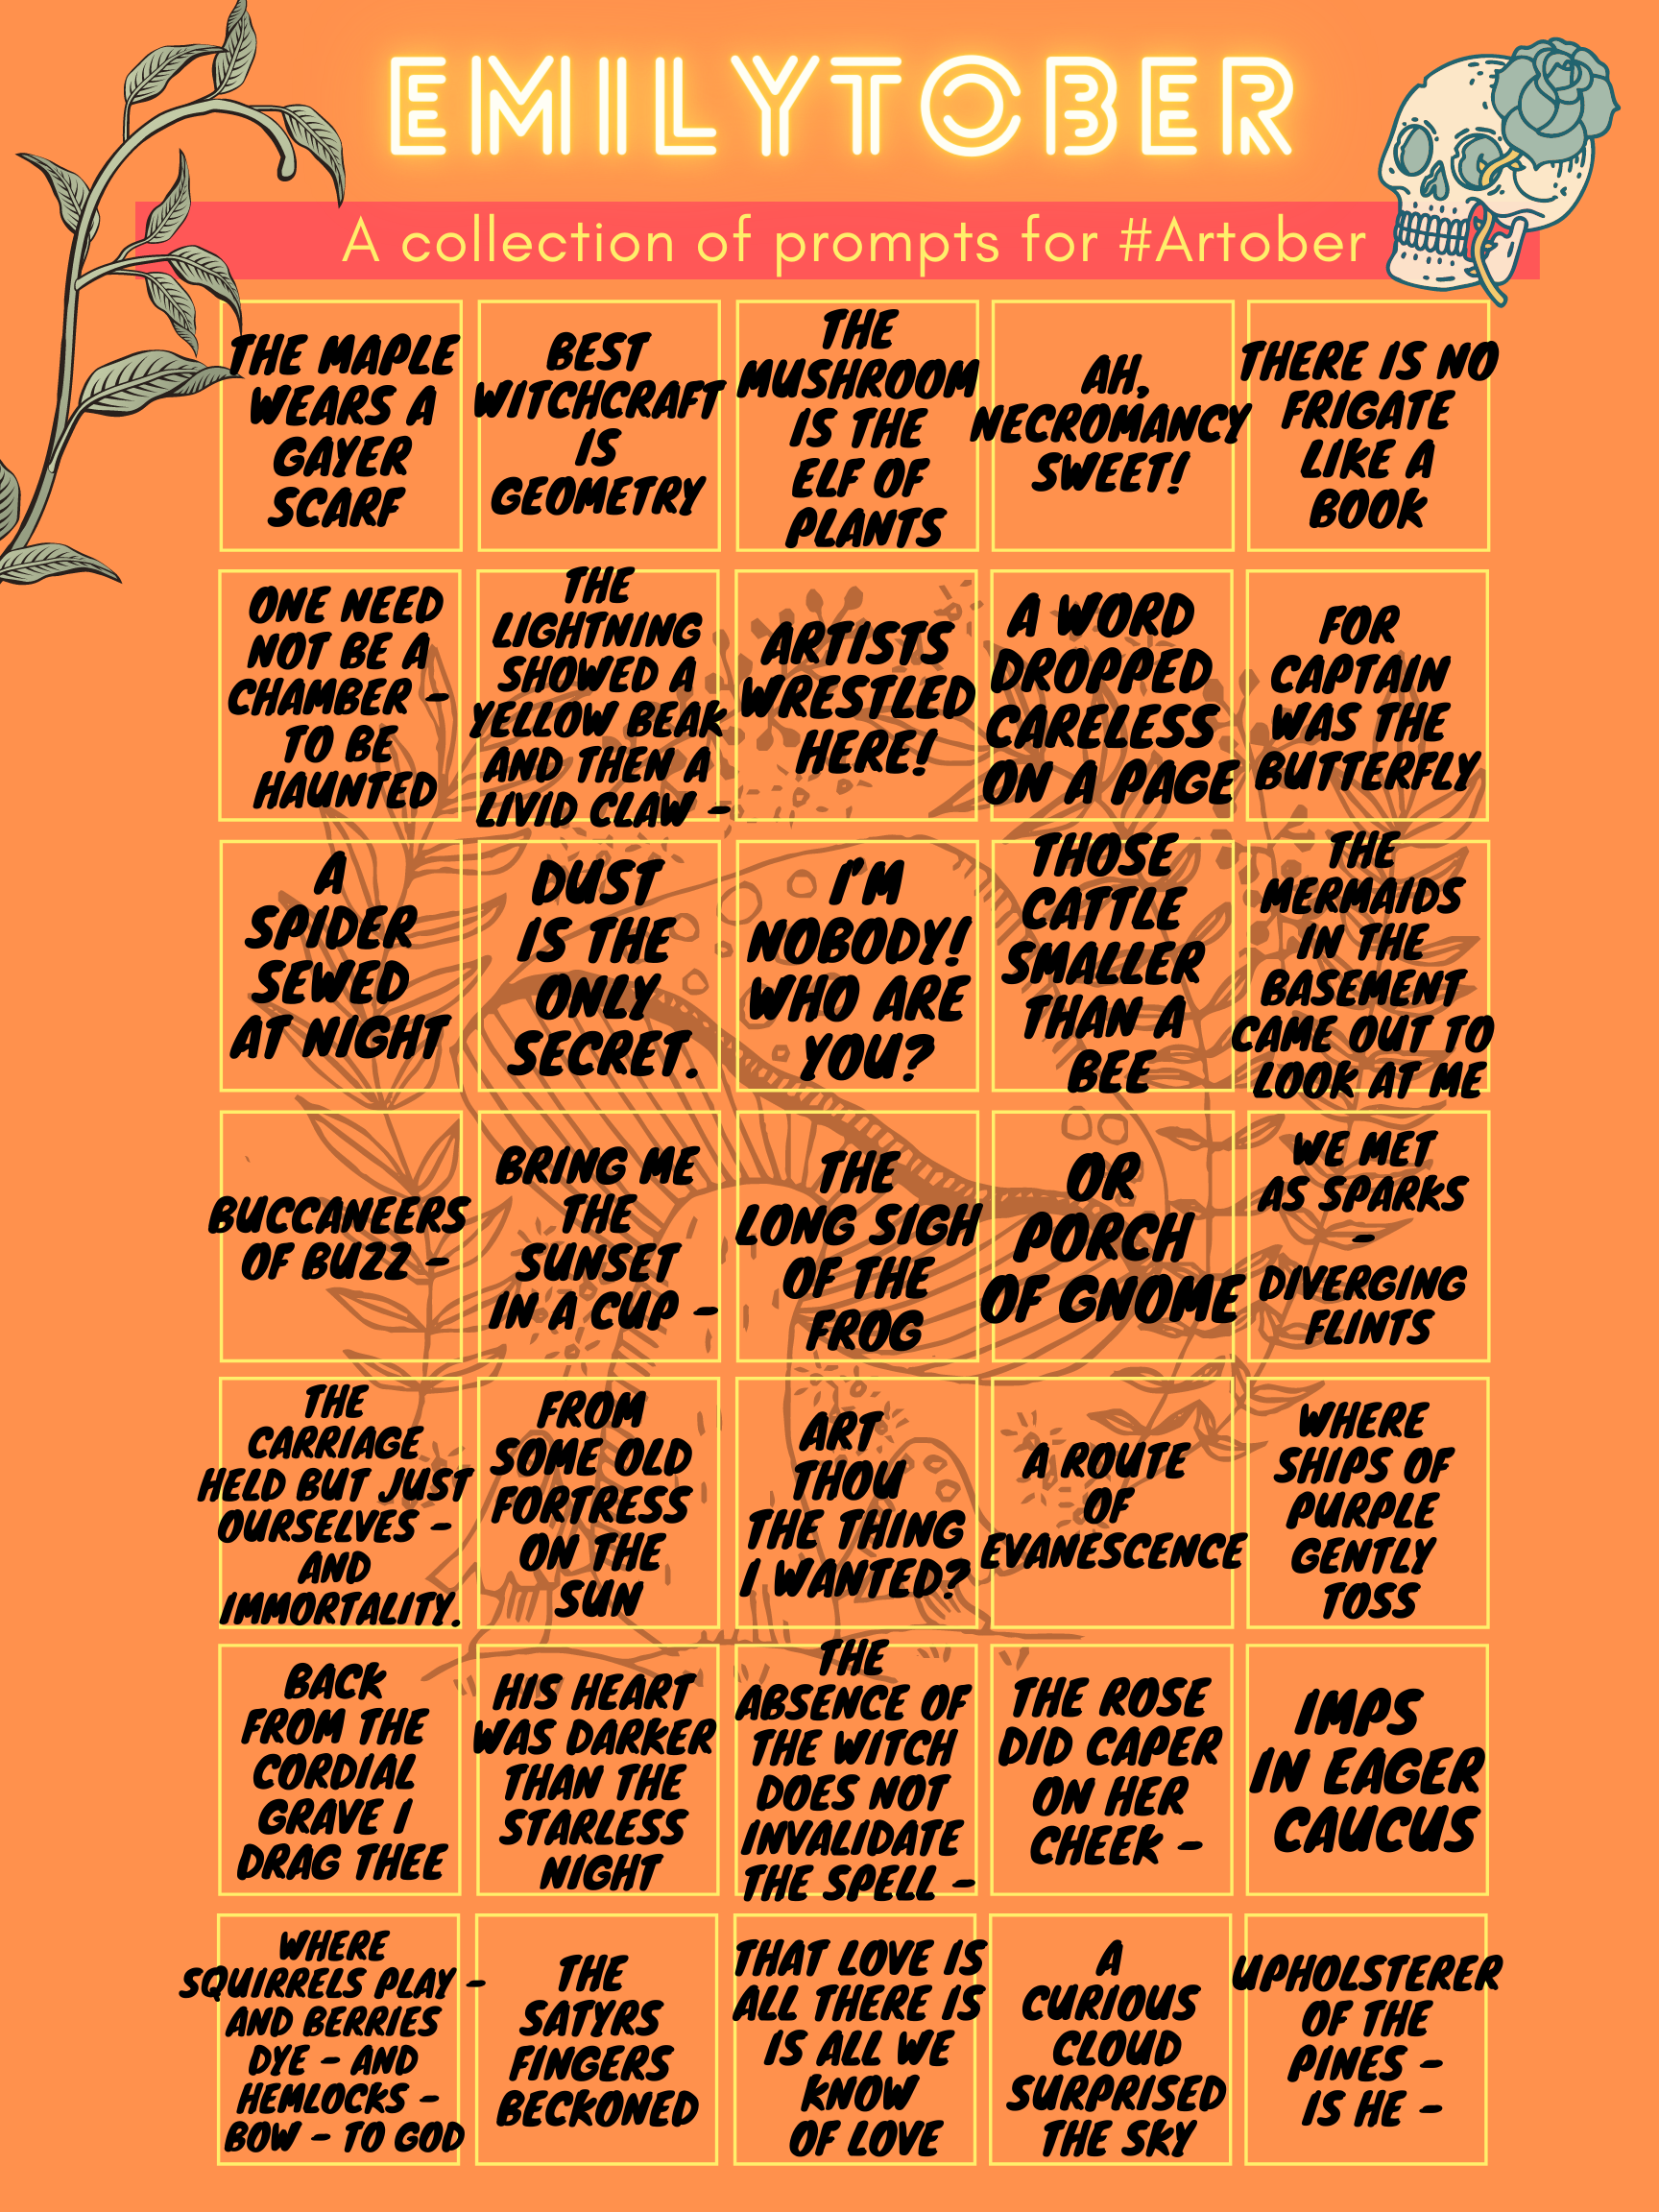 The prompts are arranged in a grid over an orange background featuring a faded image of a mushroom, and framed by images of a skull, flowers, and vines